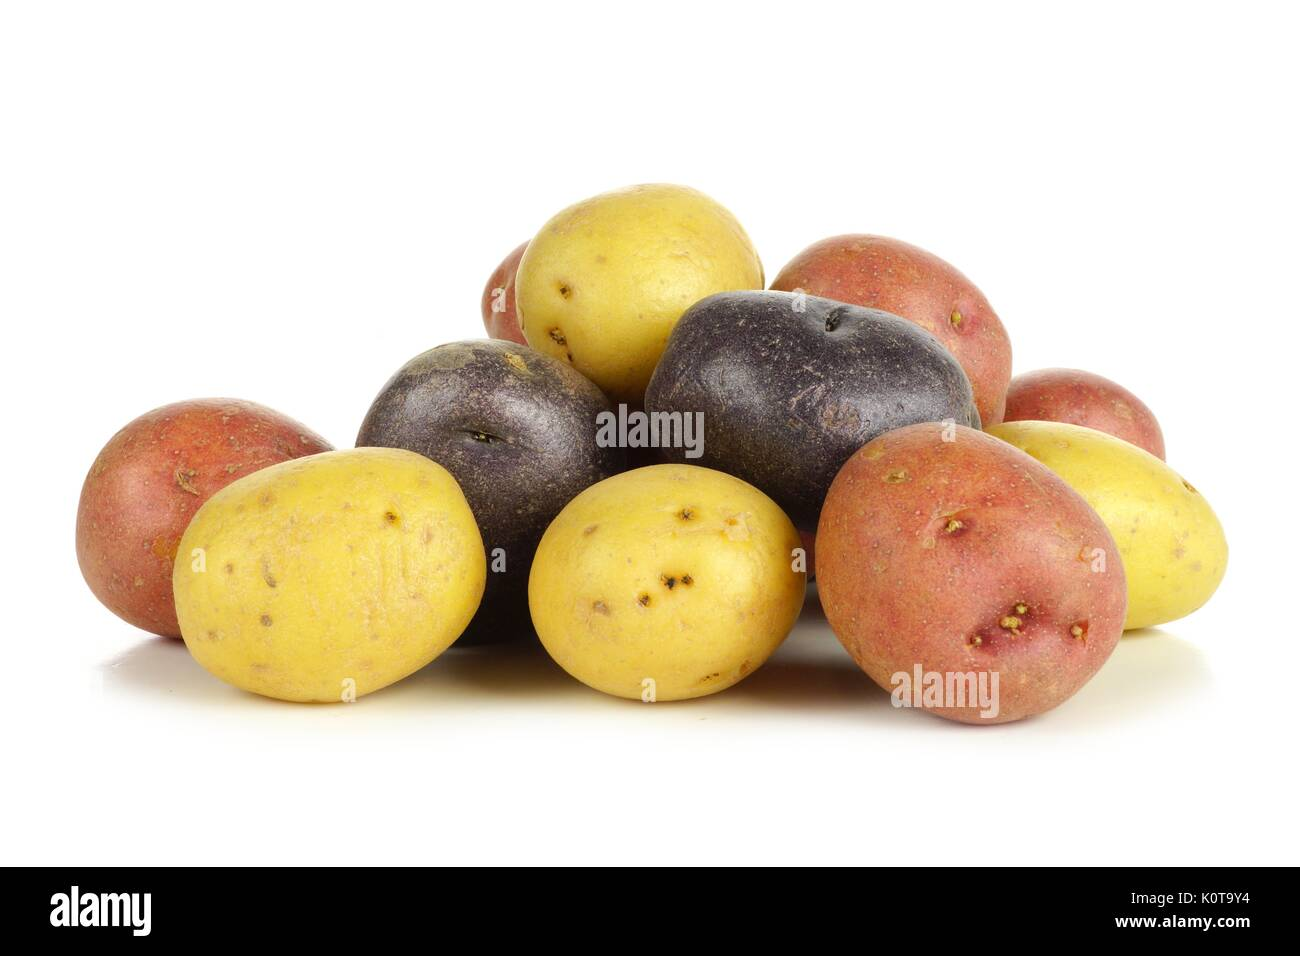 Pile of colorful fresh little potatoes over a white background - Stock Image